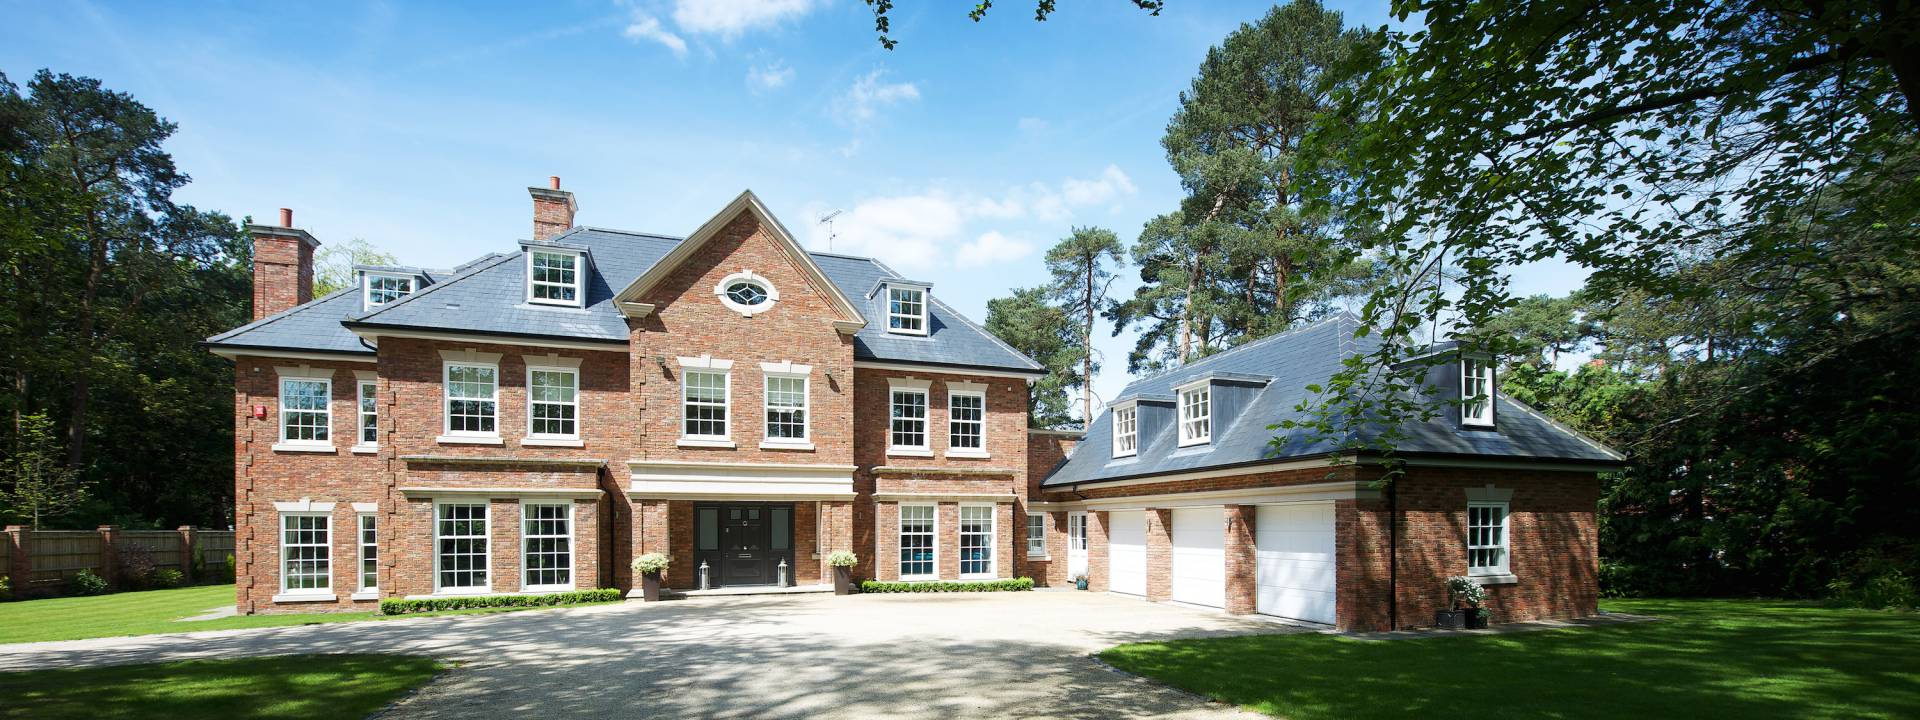 Contemporary Villa, Ascot